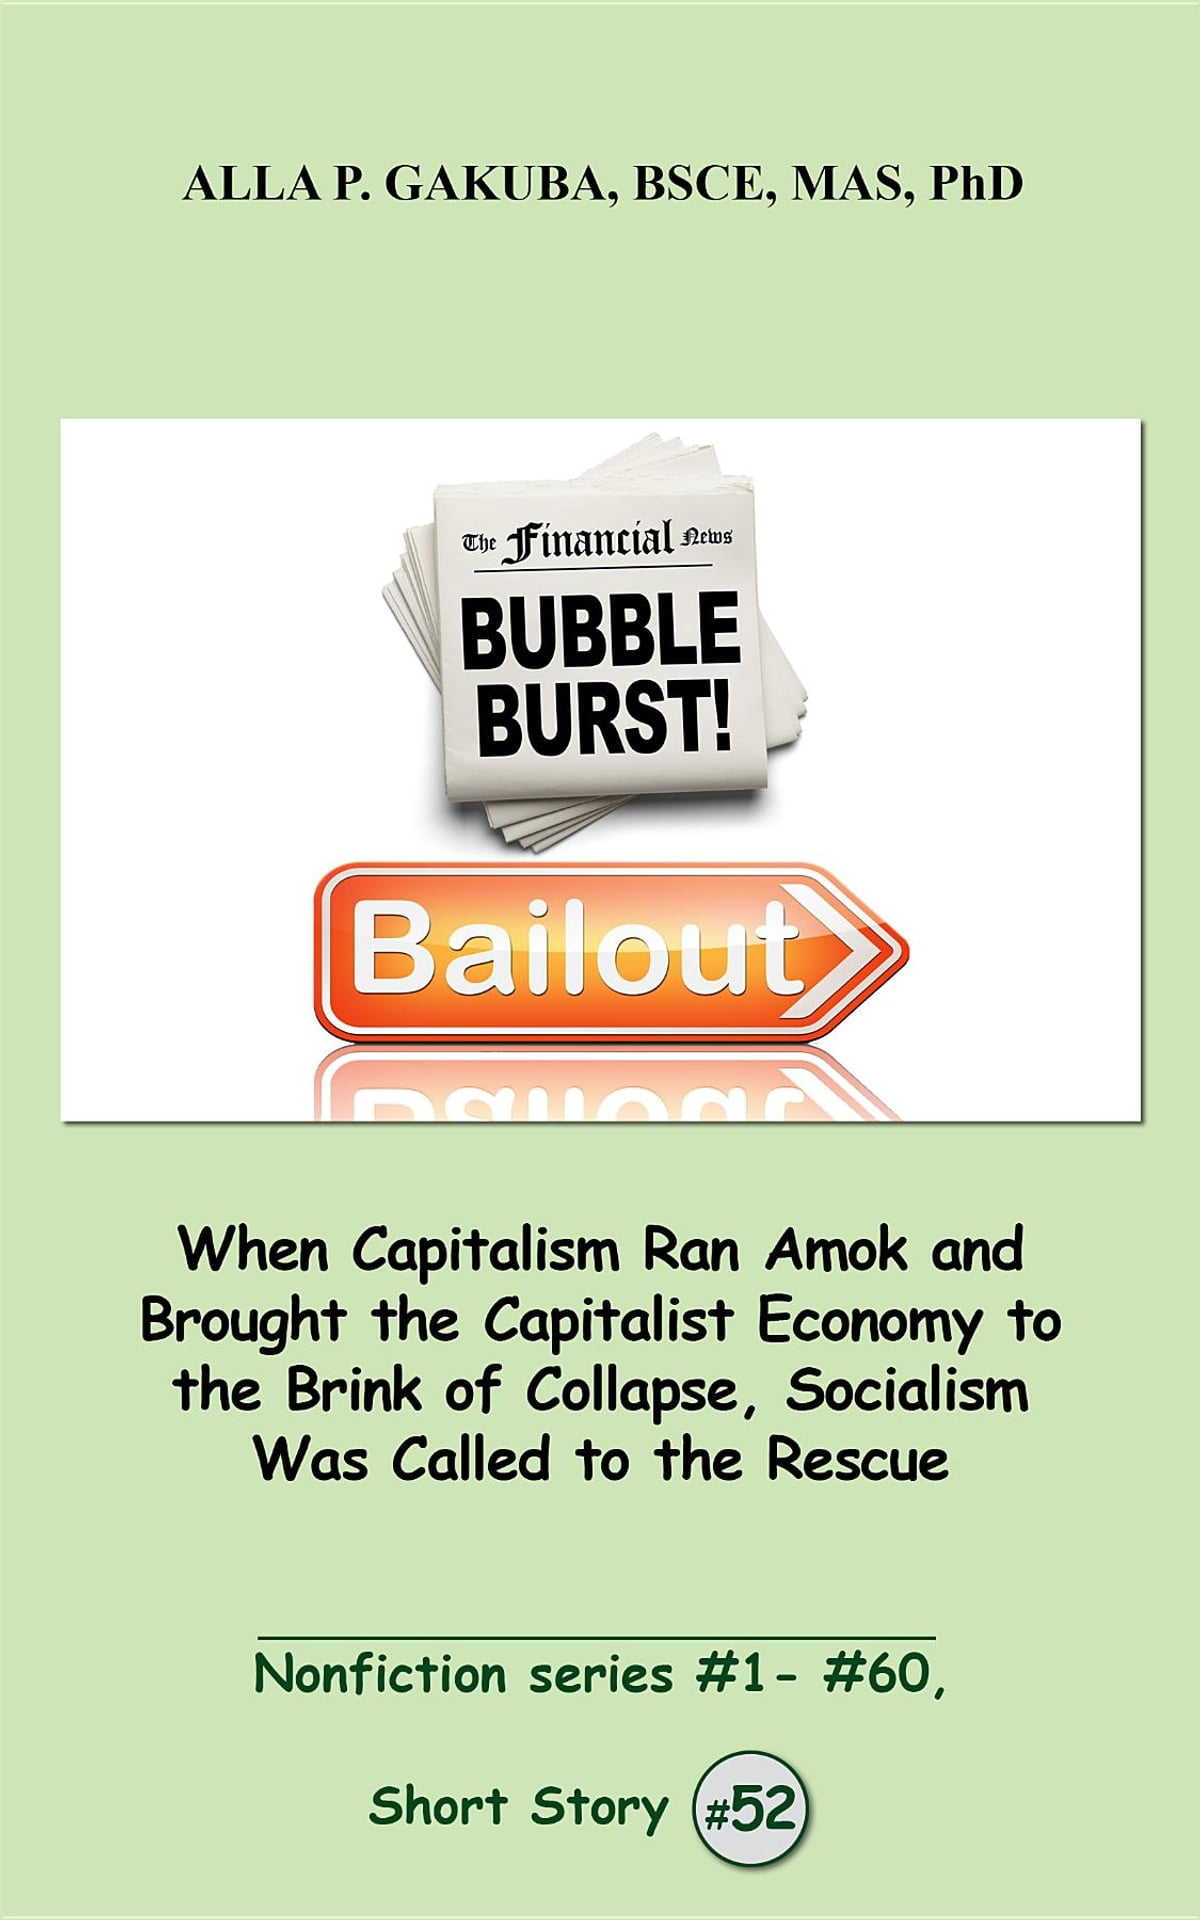 Amok Libro When Capitalism Ran Amok And Brought The Capitalist Economy To The Brink Of Collapse Socialism Was Called To The Rescue Ebook By Alla P Gakuba